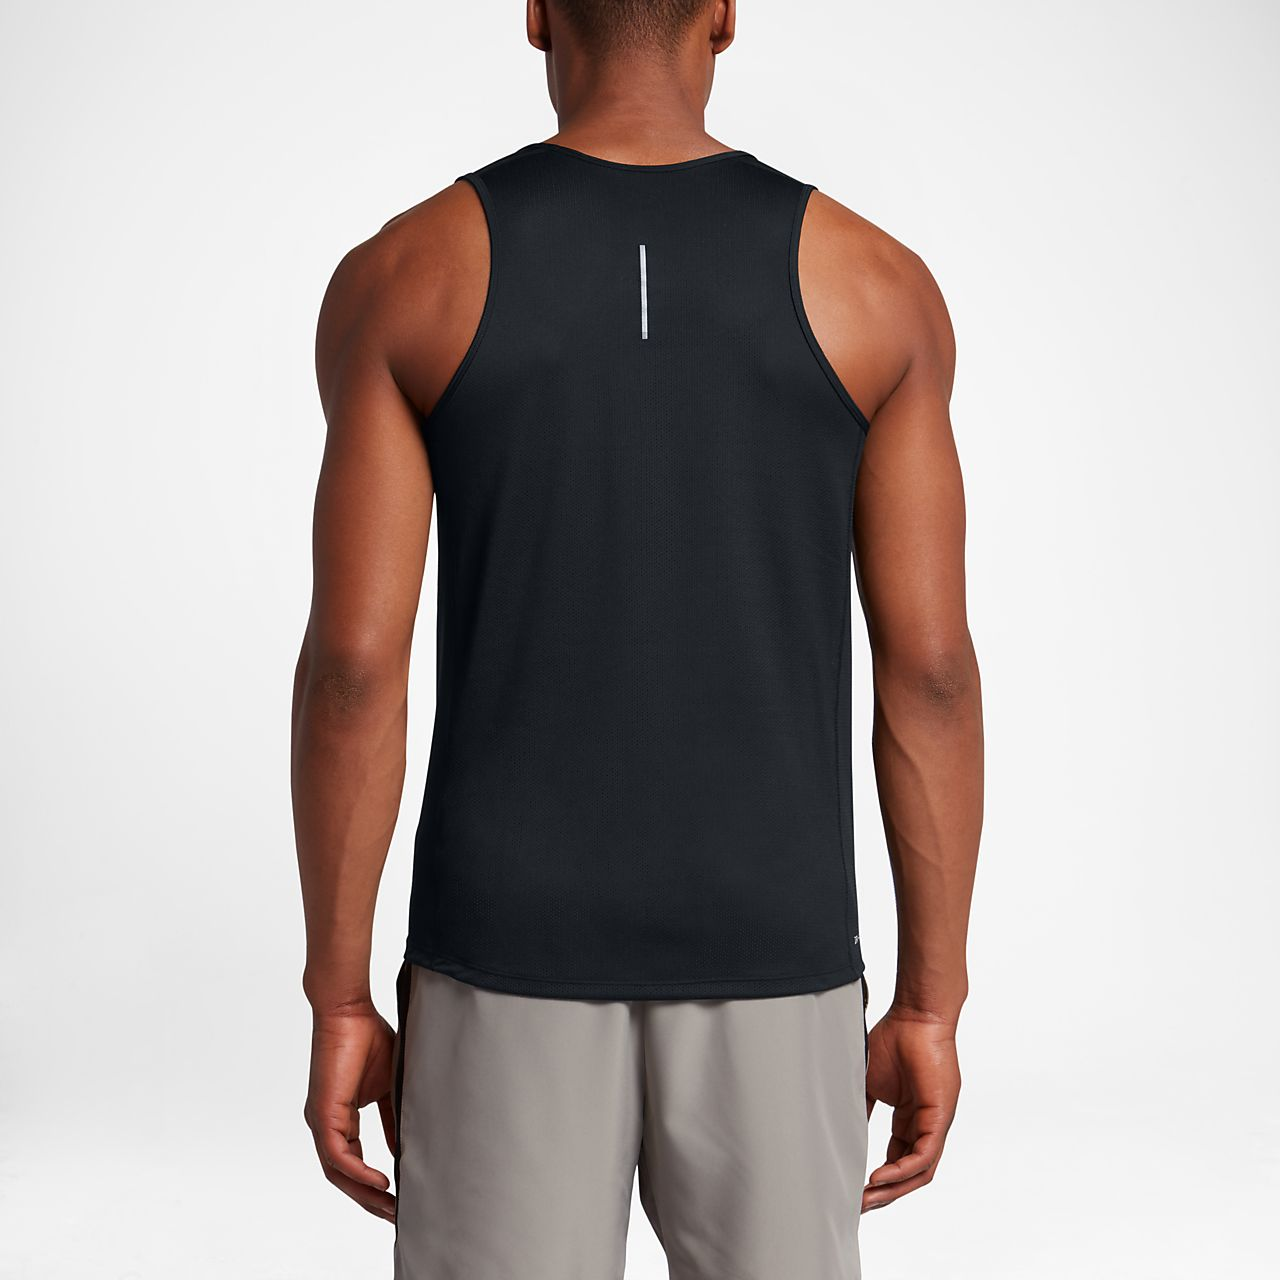 Nike Womens Basketball Tank Top - Nike Elite Black/Cool Grey O13c5810